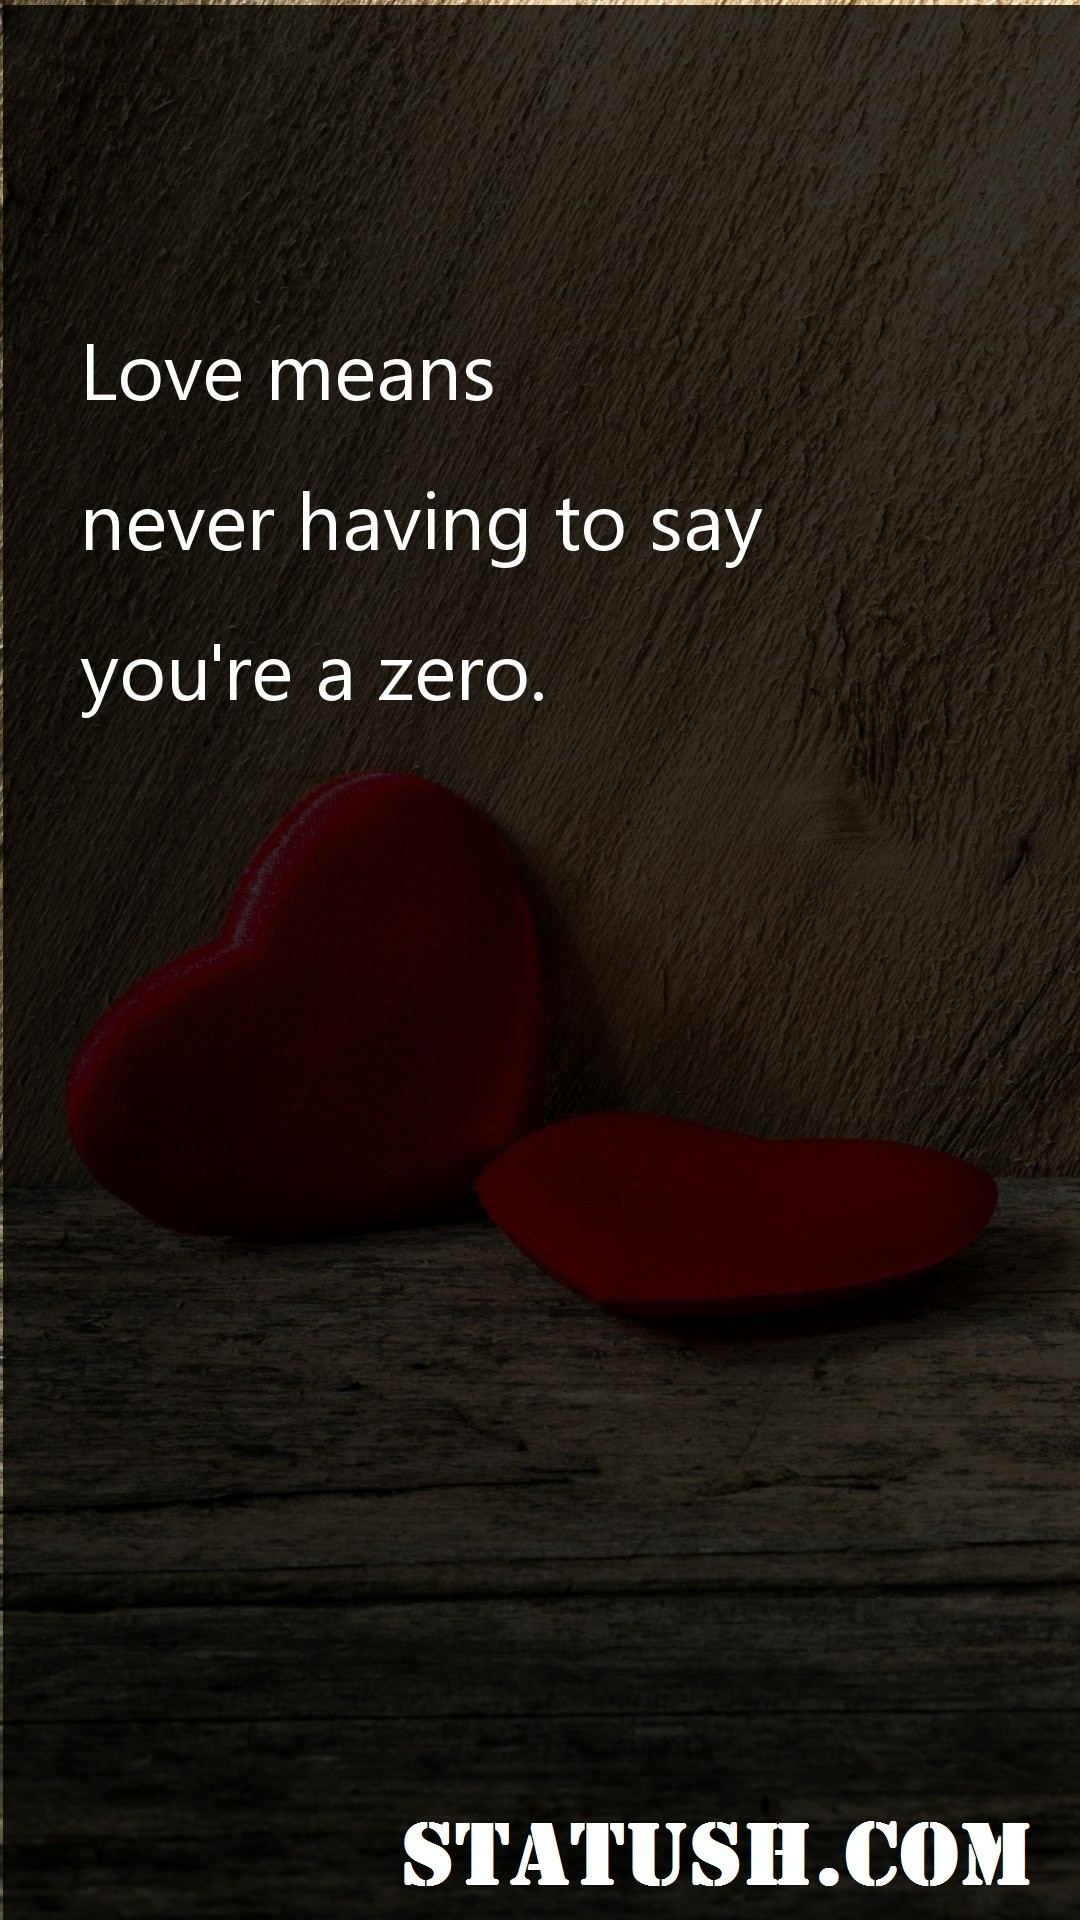 Love means never having to say youre a zero